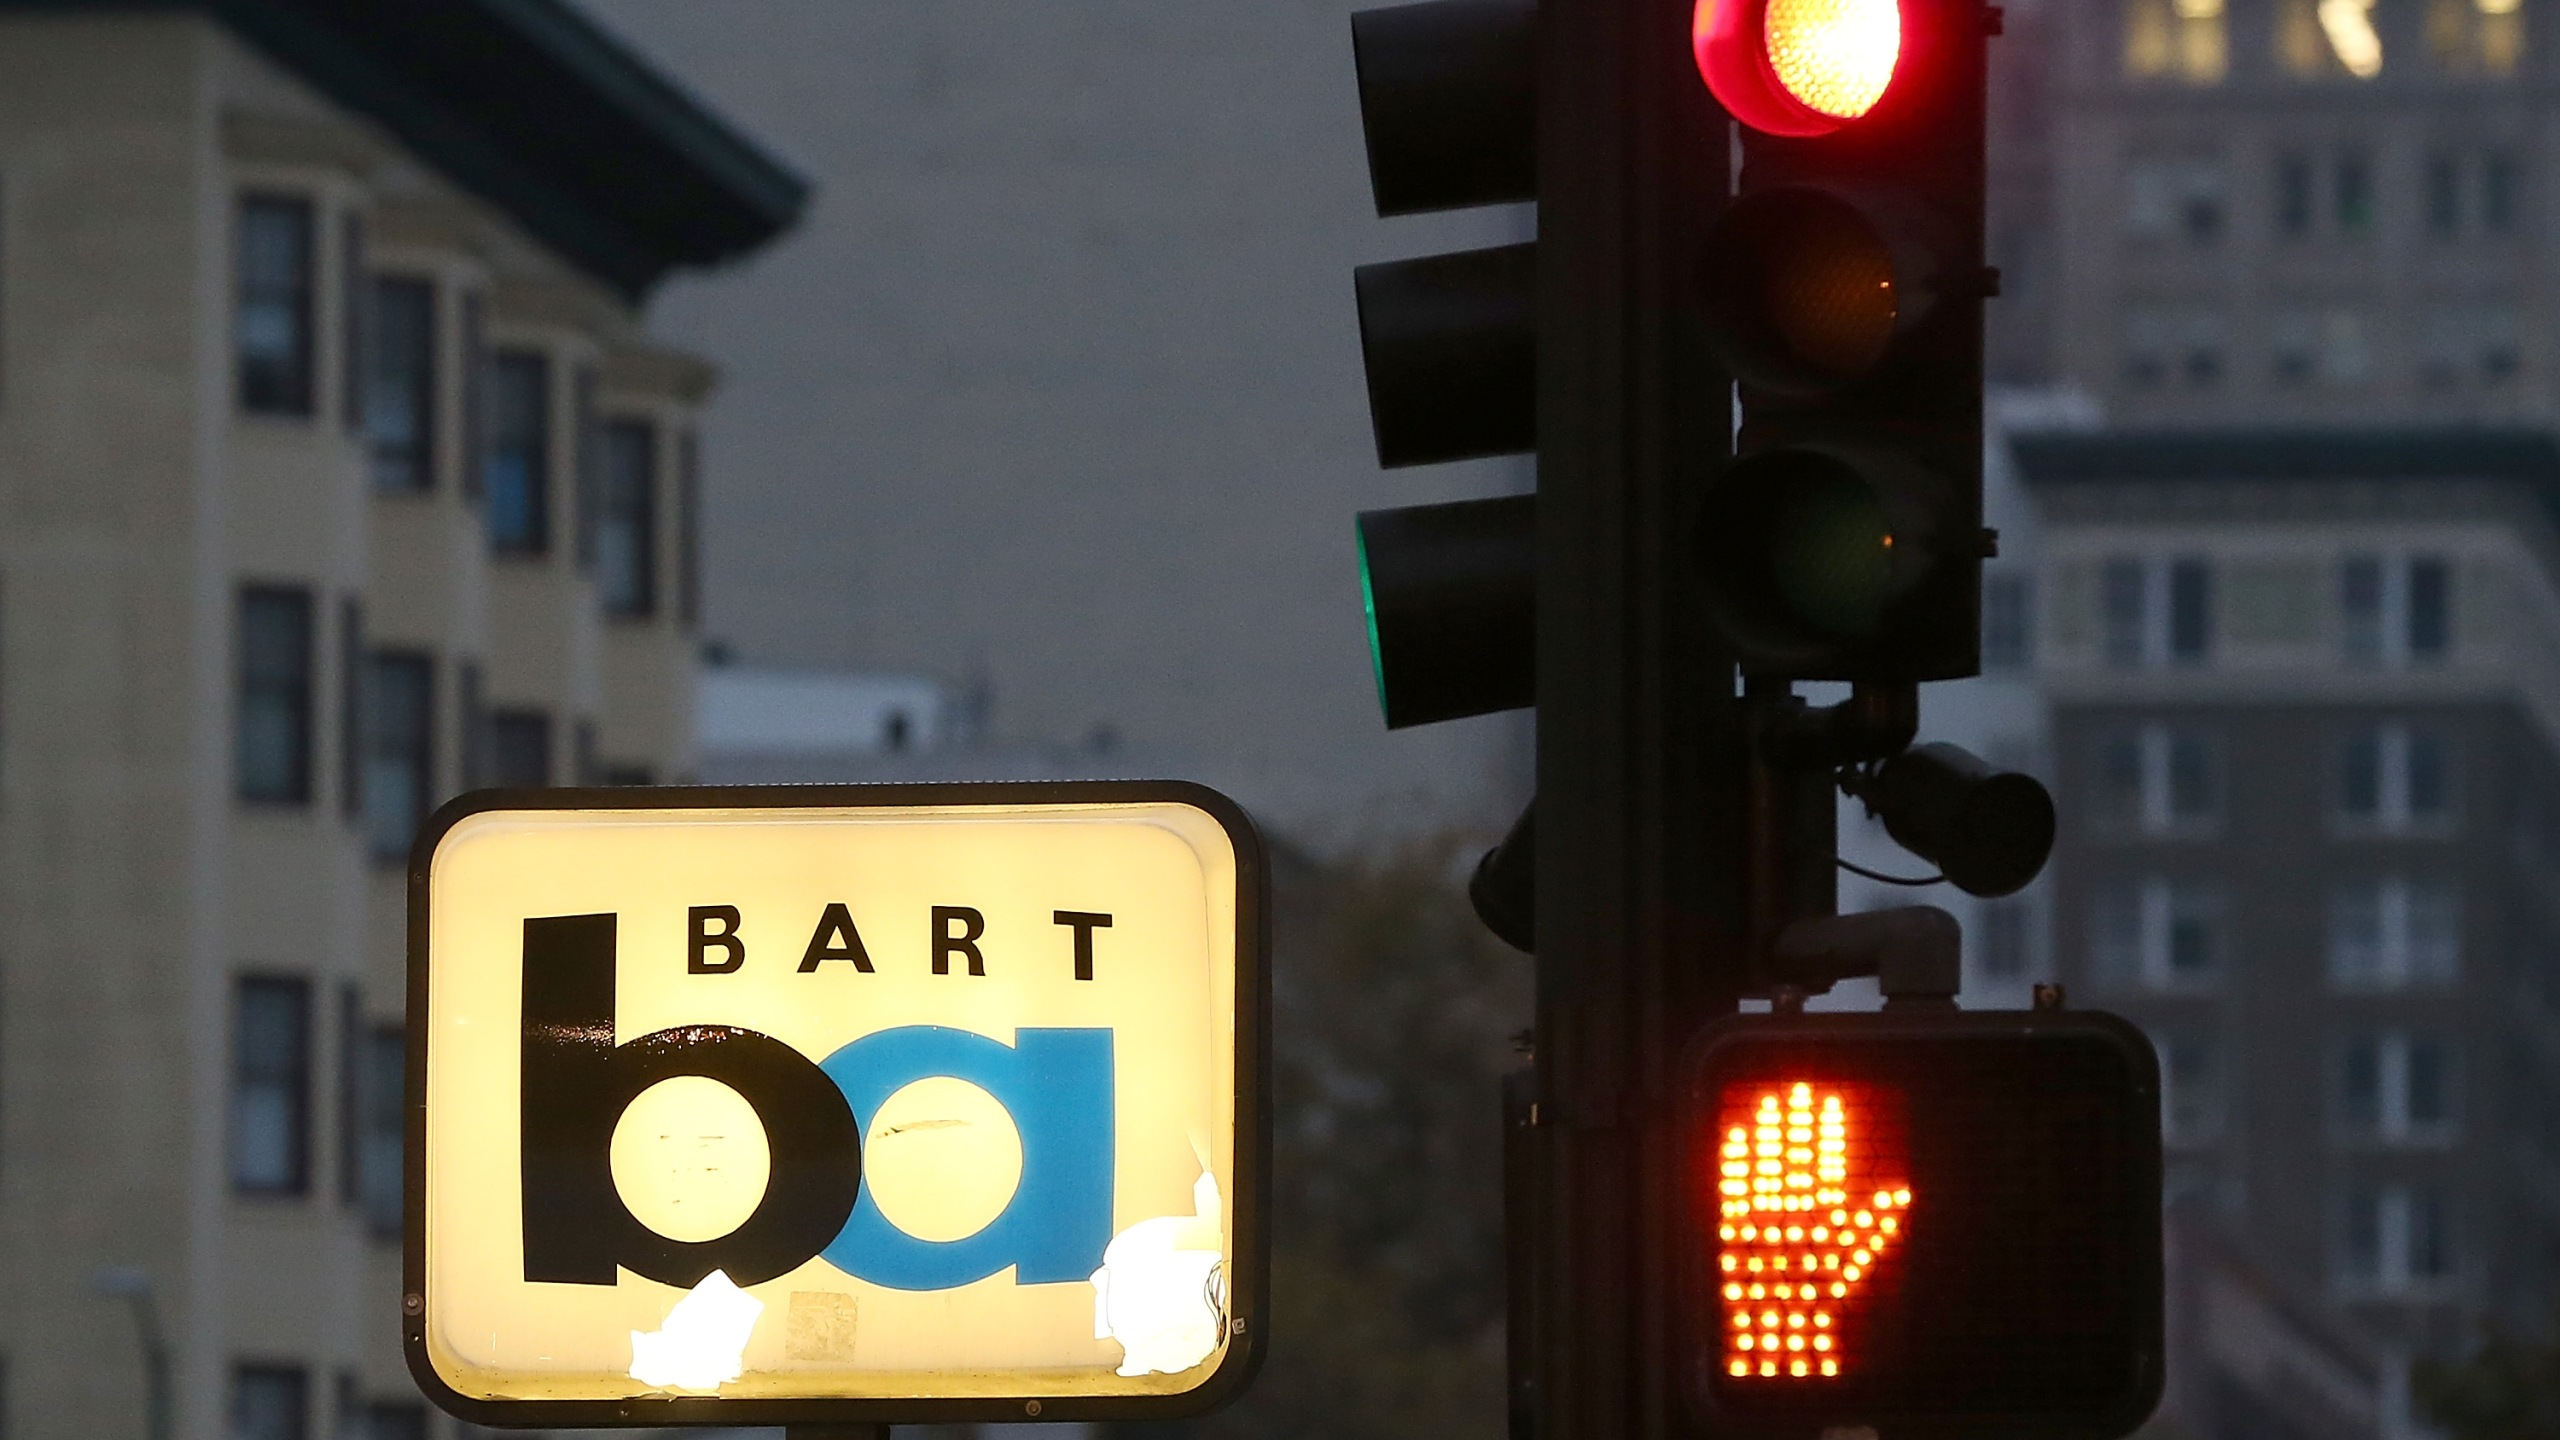 A Bay Area Rapid Transit (BART) sign stands at a closed station on Oct.21, 2013 in Oakland. (Credit: Justin Sullivan/Getty Images)